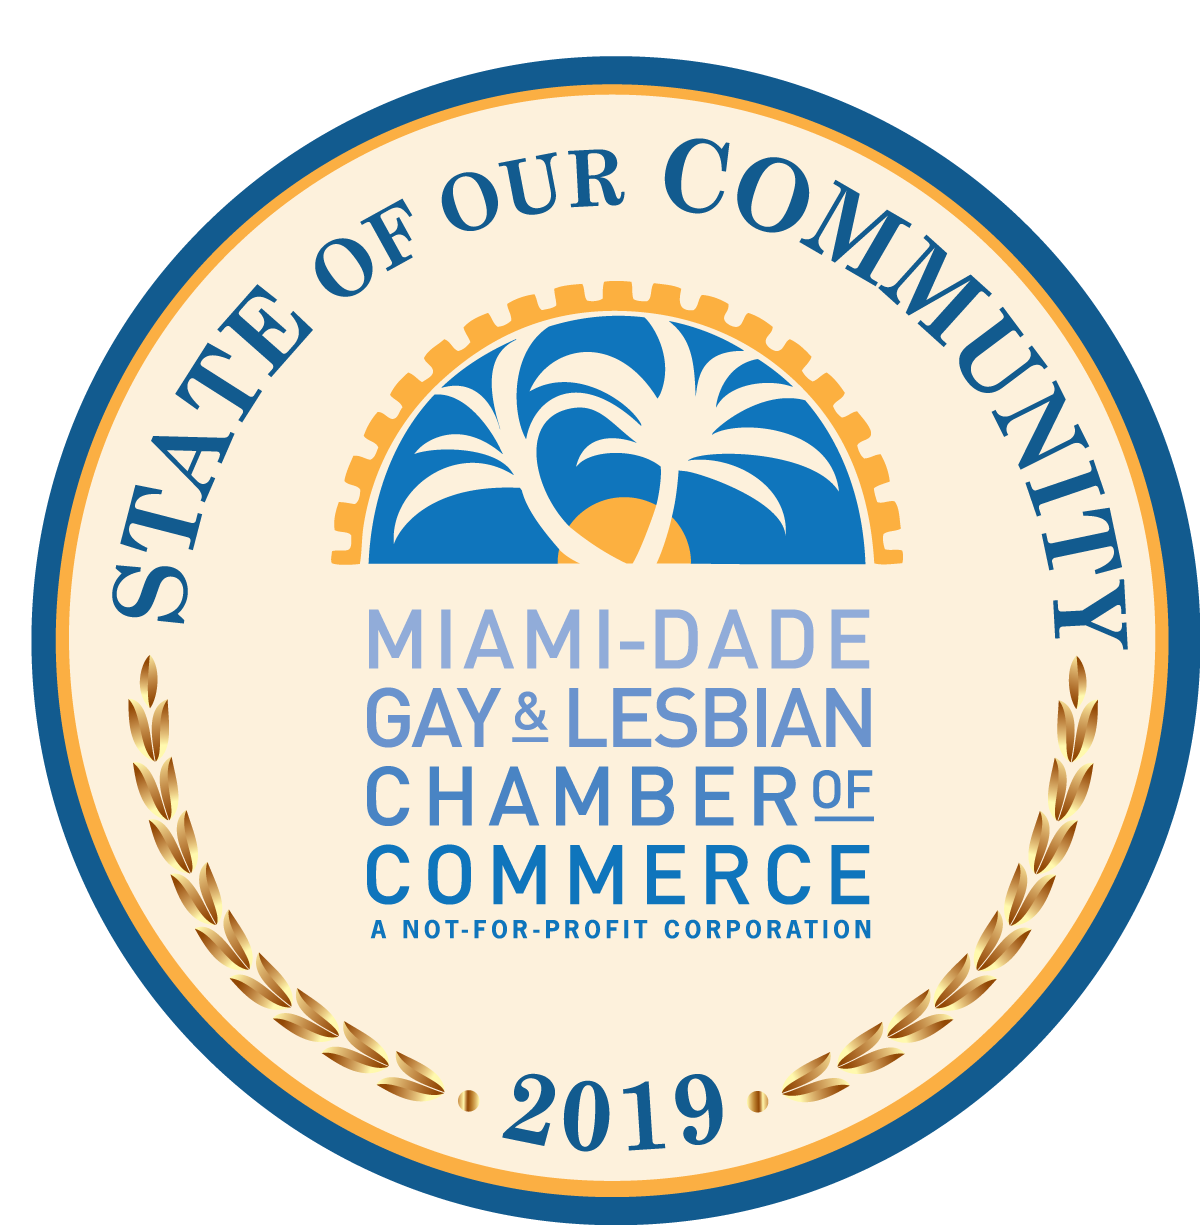 7th Annual State of our Community Luncheon